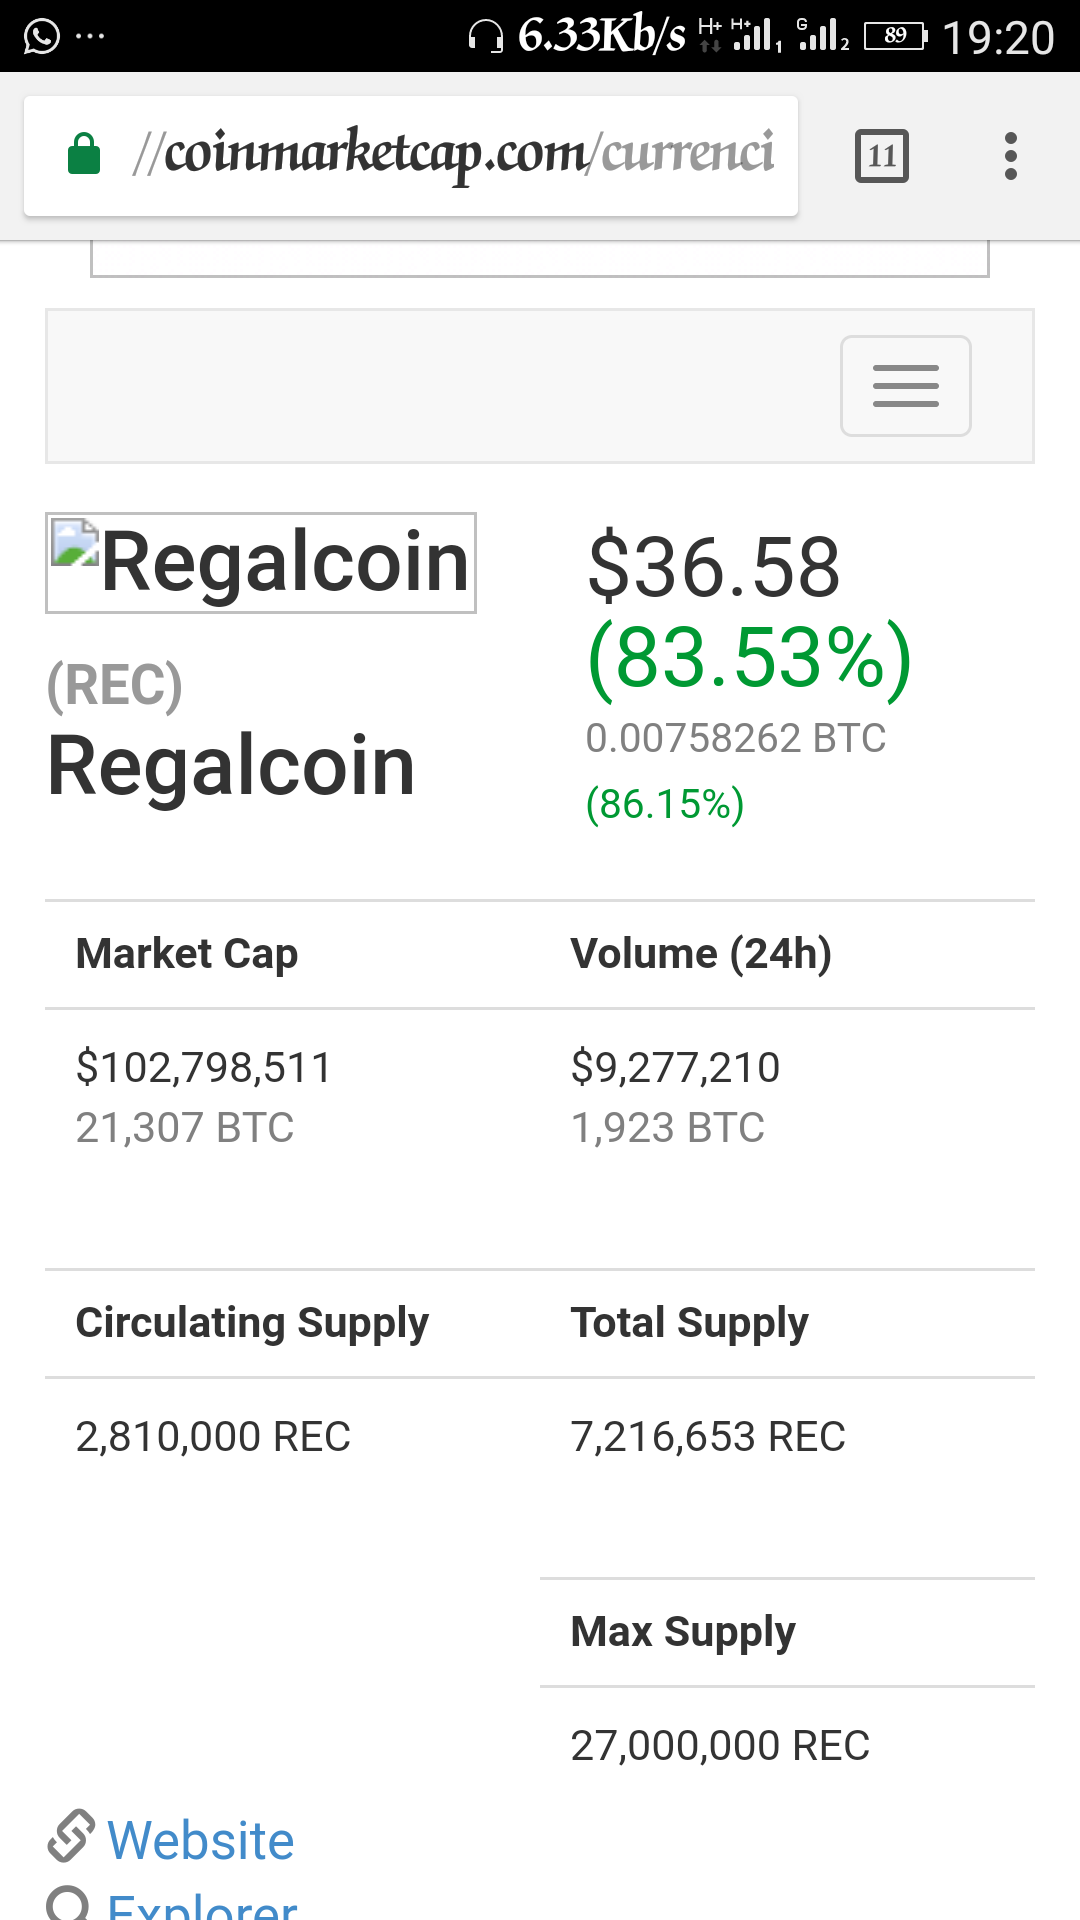 Screenshot_20171011-192037.png-Regalcoin Lending 2nd Day! Coin @ $36 With 86% Climb In 24 Hours